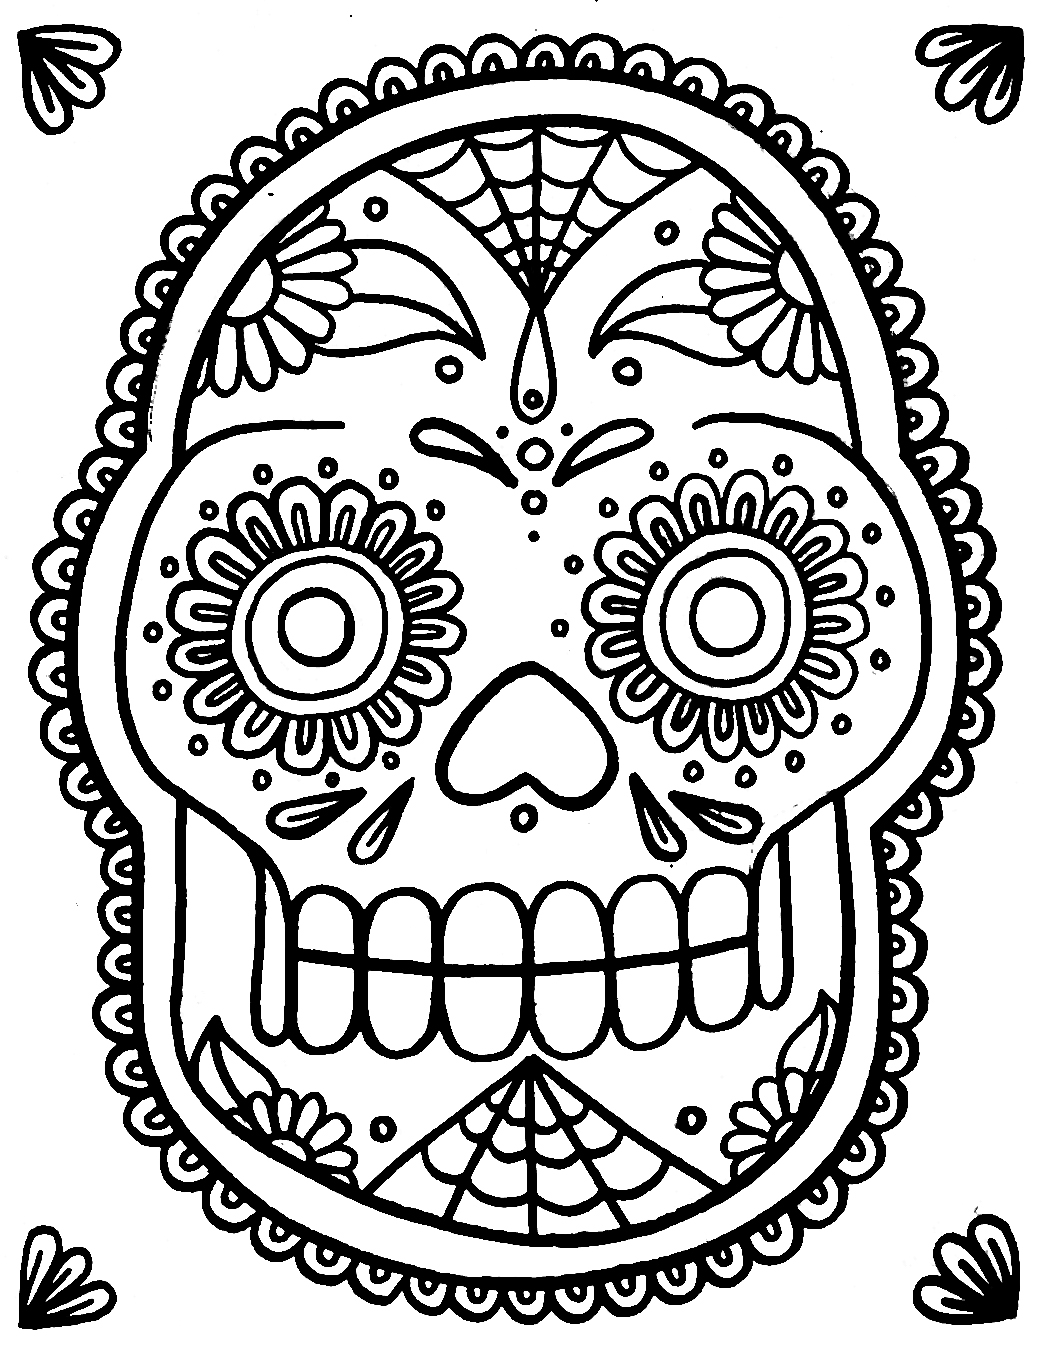 skull colouring pictures free printable skull coloring pages for kids pictures colouring skull